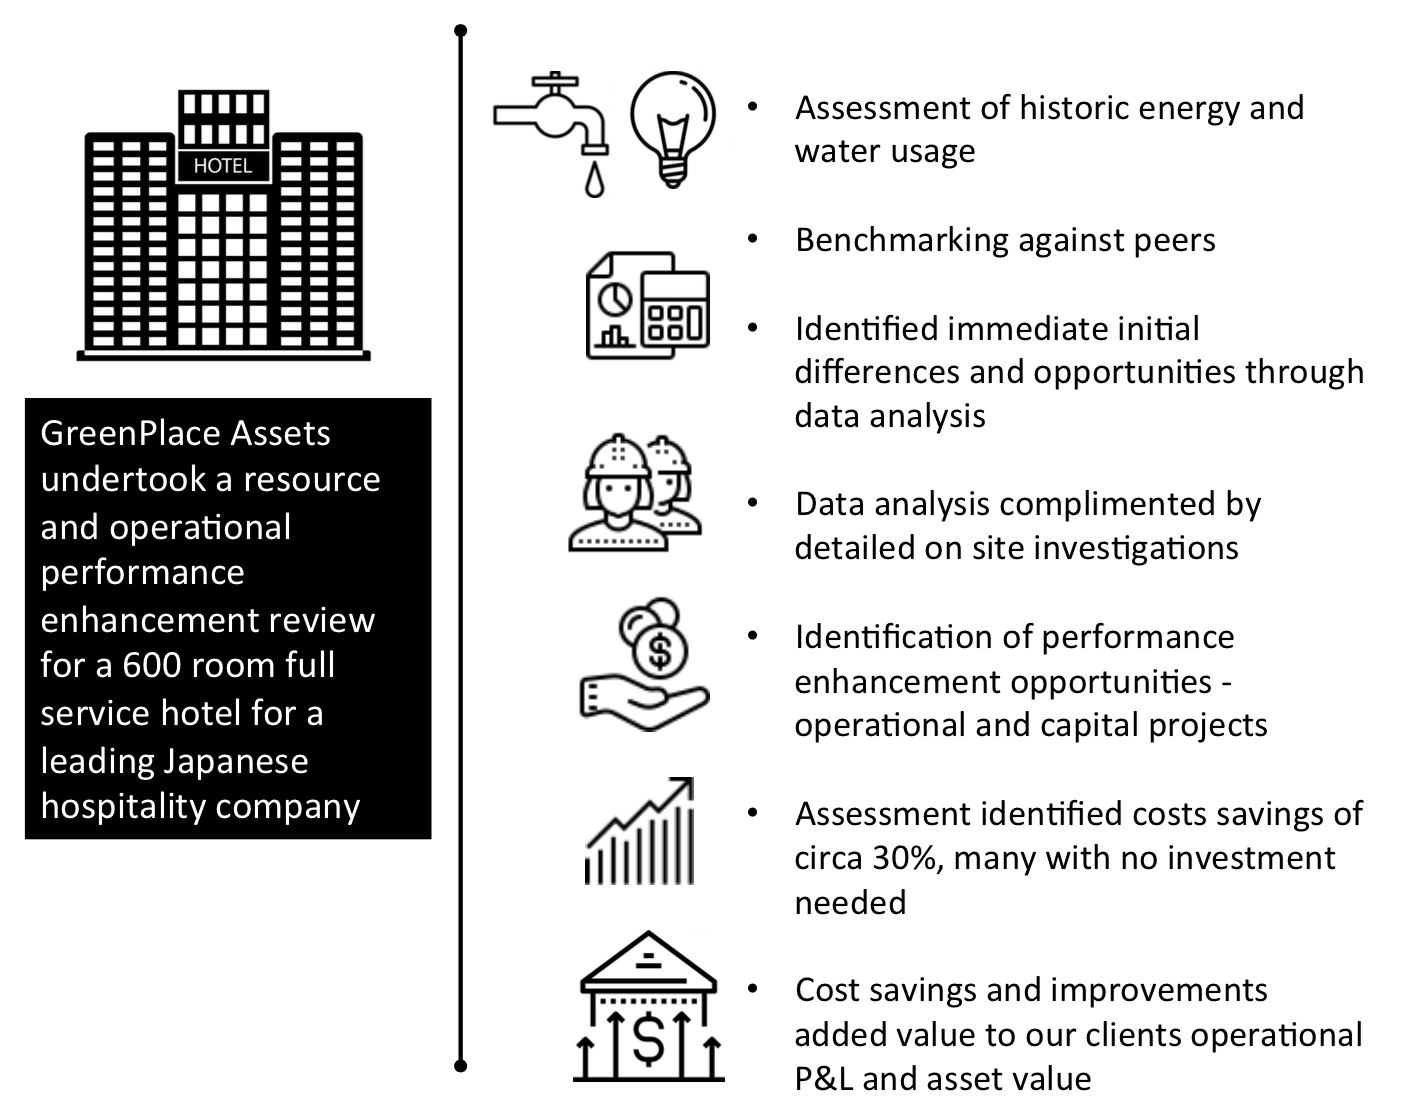 Hotel - 600 room hotel in Japan- energy, water and waste. Operational and cap x led performance improvements.